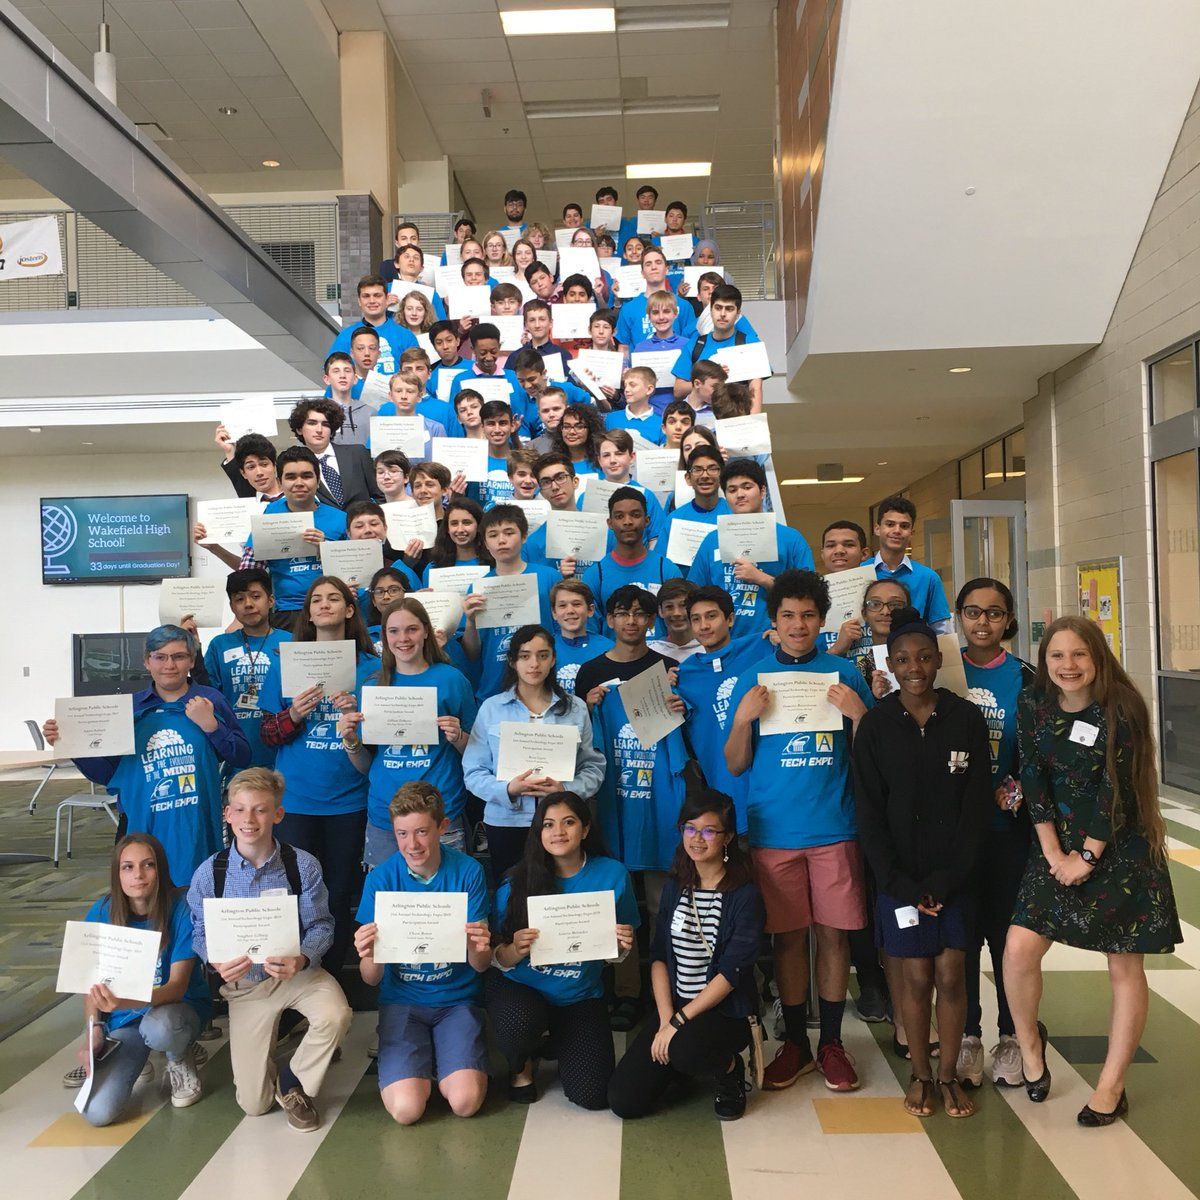 So many of talented <a target='_blank' href='http://twitter.com/APSVirginia'>@APSVirginia</a> students here today at the Annual <a target='_blank' href='http://search.twitter.com/search?q=Tech'><a target='_blank' href='https://twitter.com/hashtag/Tech?src=hash'>#Tech</a></a> Expo <a target='_blank' href='http://twitter.com/APS_STEM'>@APS_STEM</a> <a target='_blank' href='http://twitter.com/APSCTAE'>@APSCTAE</a> <a target='_blank' href='http://search.twitter.com/search?q=STEMeducation'><a target='_blank' href='https://twitter.com/hashtag/STEMeducation?src=hash'>#STEMeducation</a></a> <a target='_blank' href='http://search.twitter.com/search?q=STEMStrong'><a target='_blank' href='https://twitter.com/hashtag/STEMStrong?src=hash'>#STEMStrong</a></a> <a target='_blank' href='https://t.co/8aFRGzL3kv'>https://t.co/8aFRGzL3kv</a>